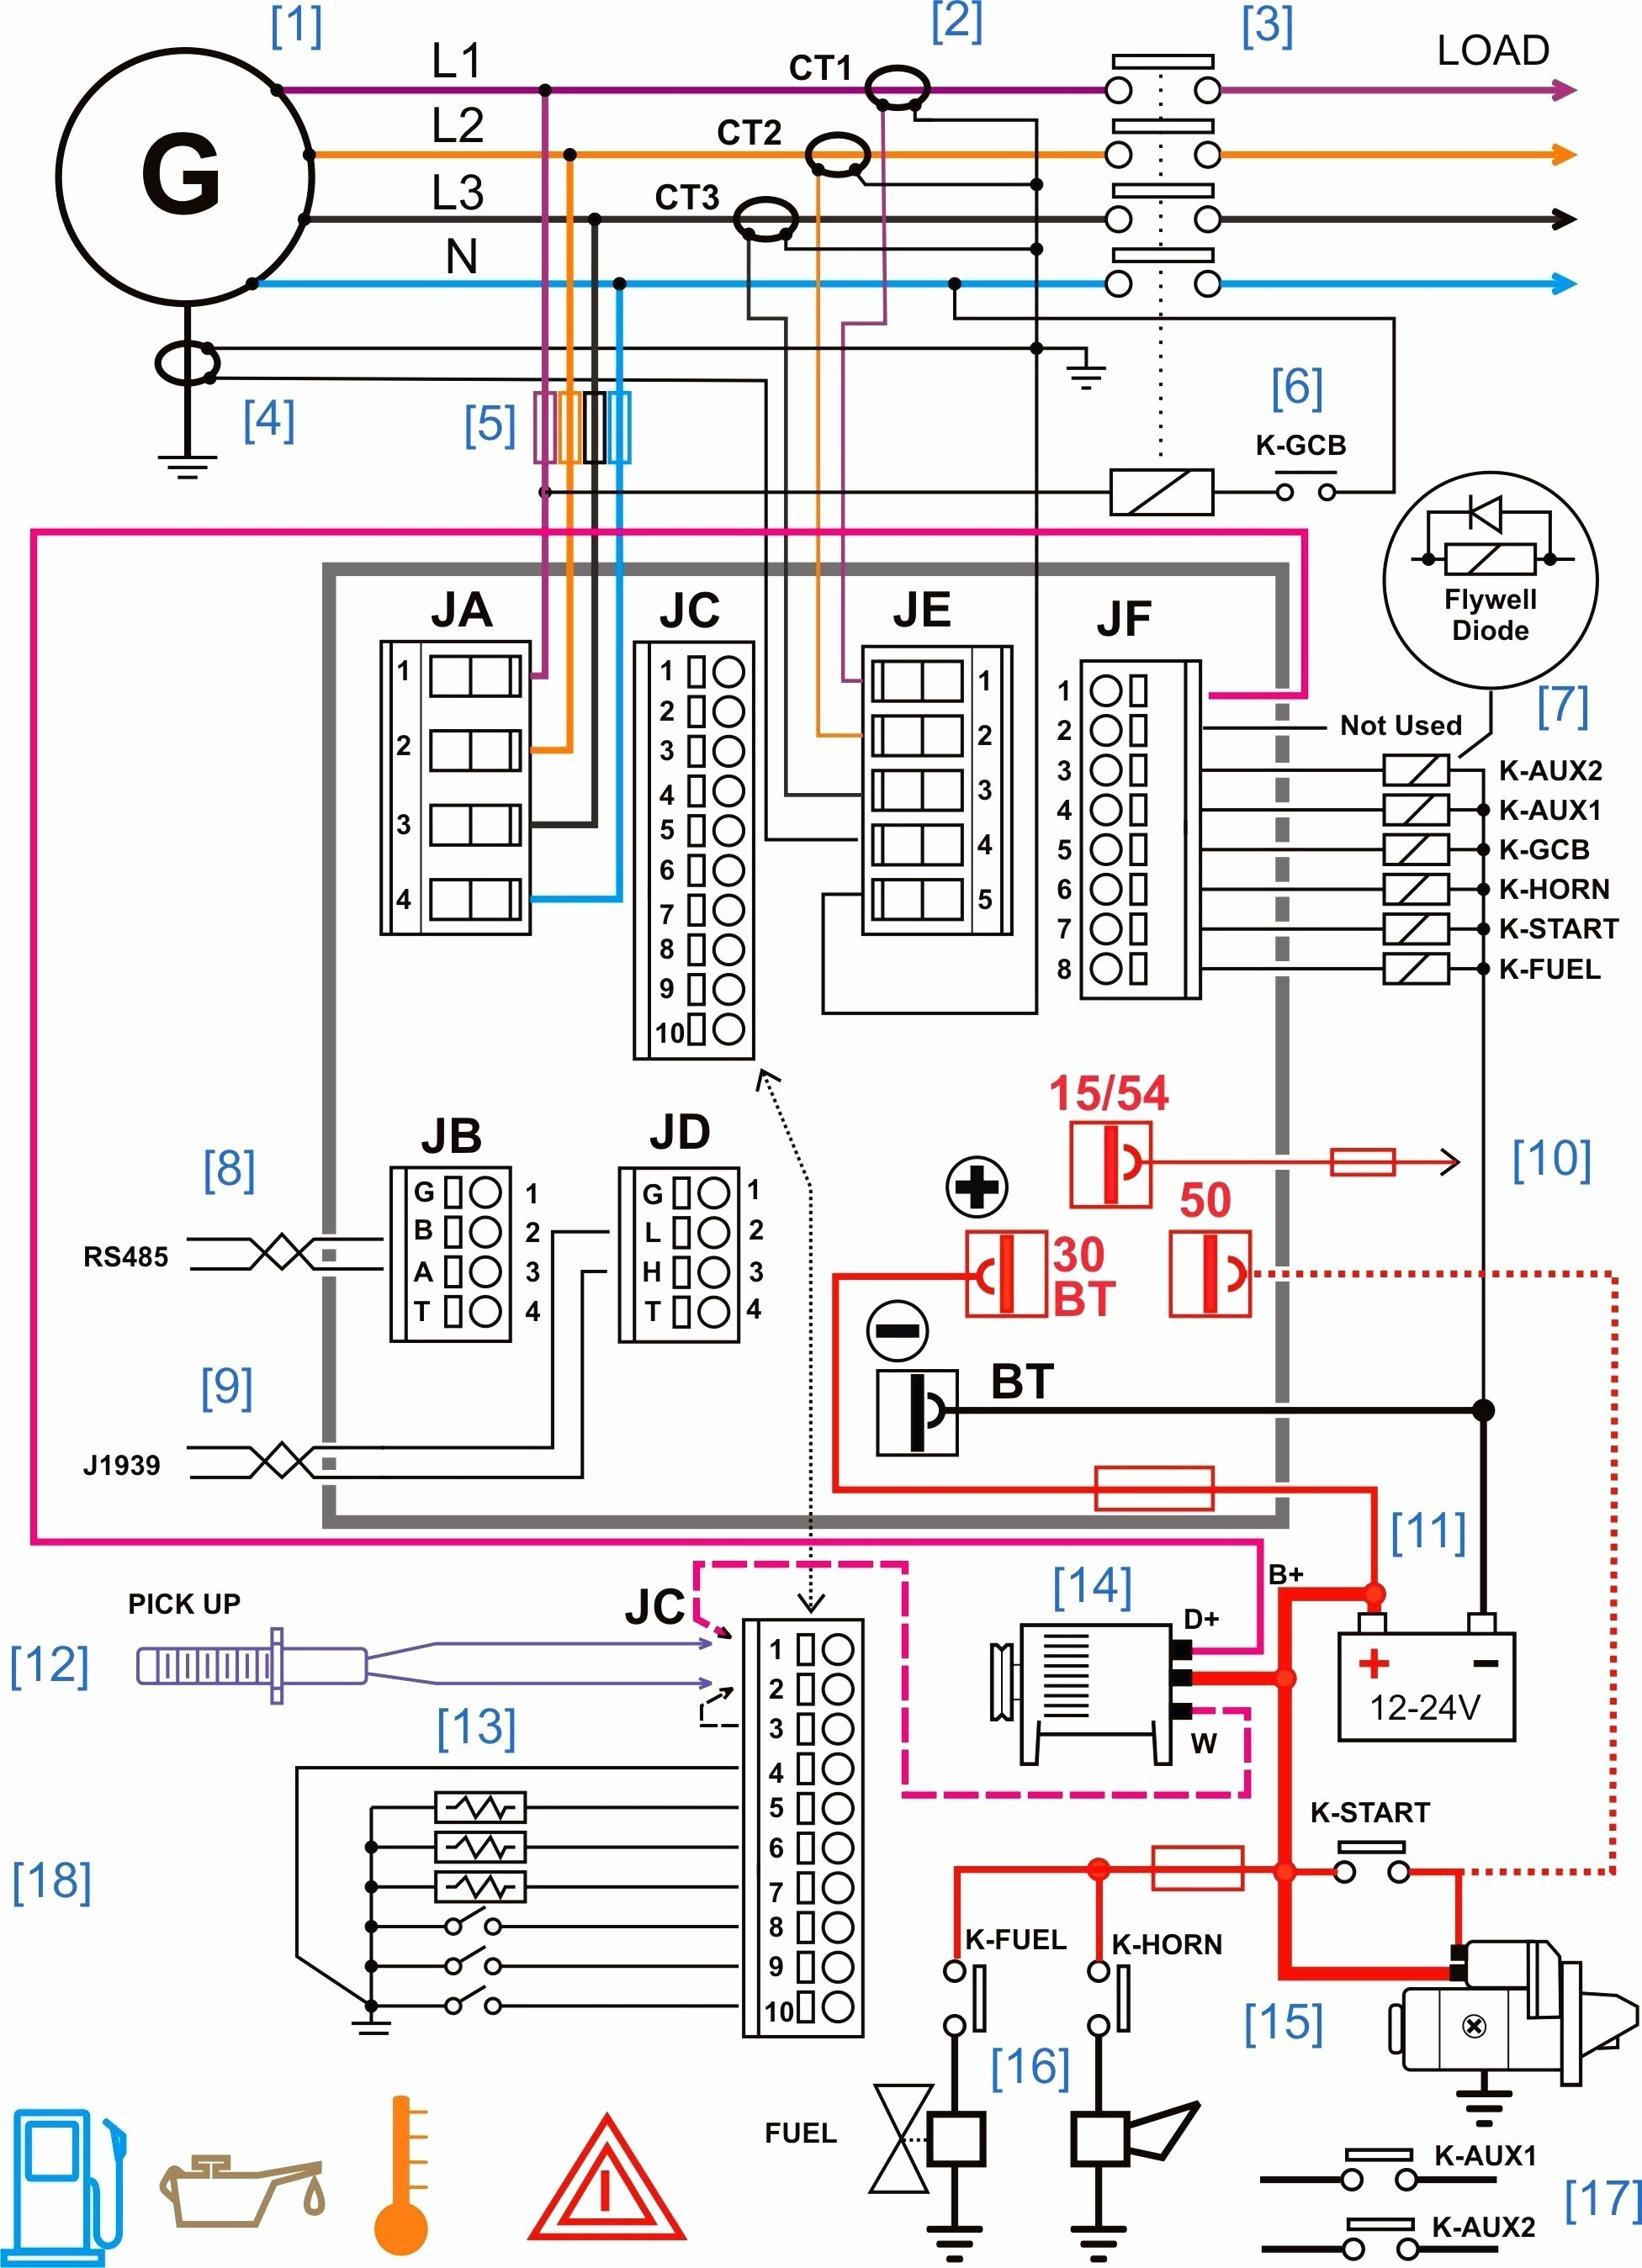 Car Stereo Hook Up Diagram Wiring Harness Diagram 2018 Car Stereo Wiring Diagrams 0d Of Car Stereo Hook Up Diagram